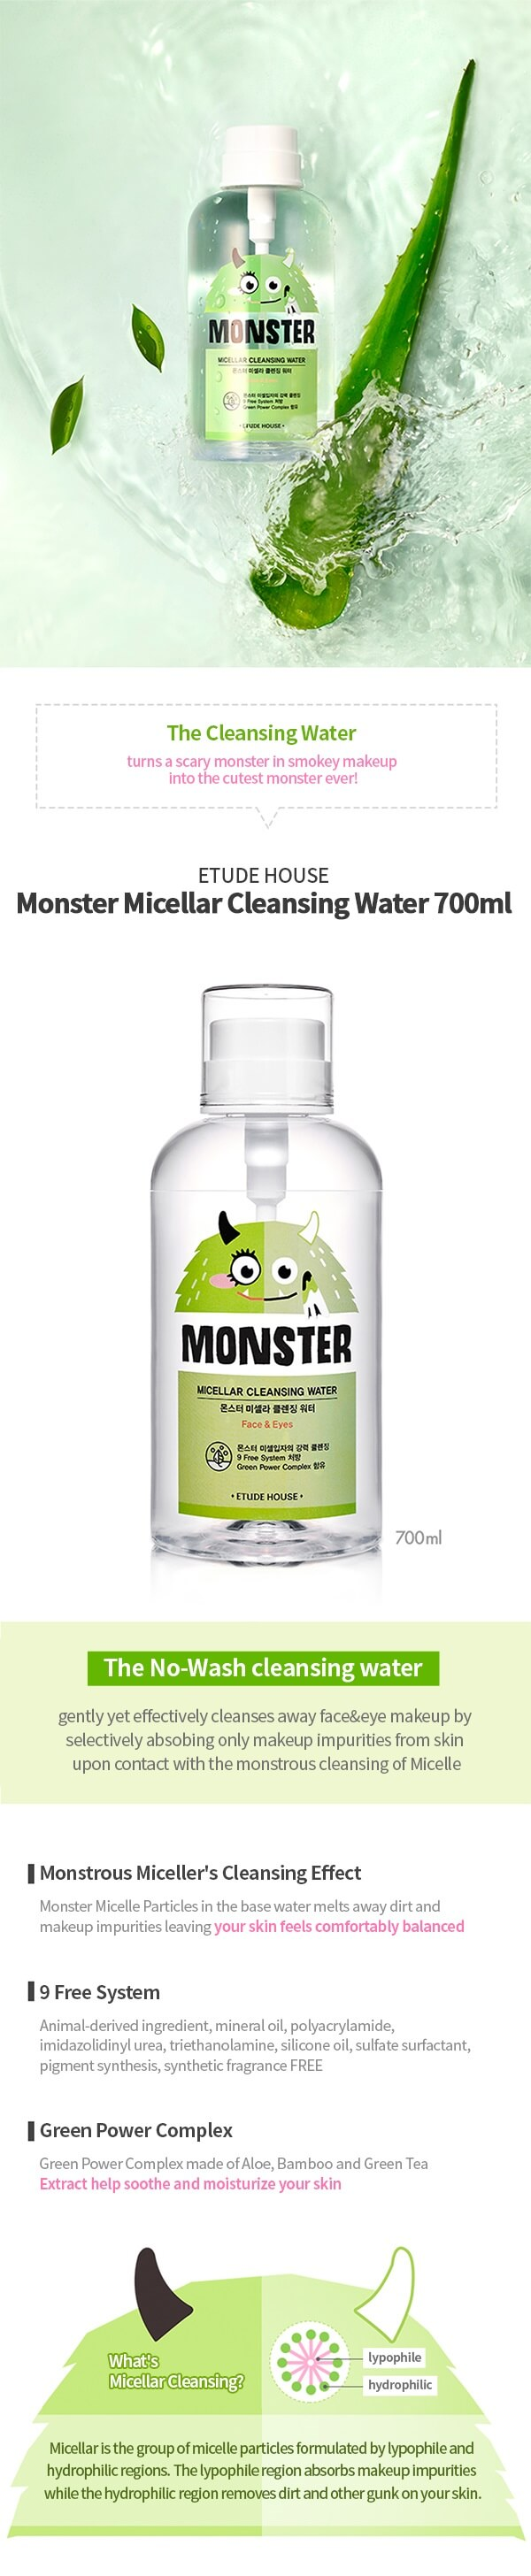 Etude House Monster Micellar Cleansing Water 700ml